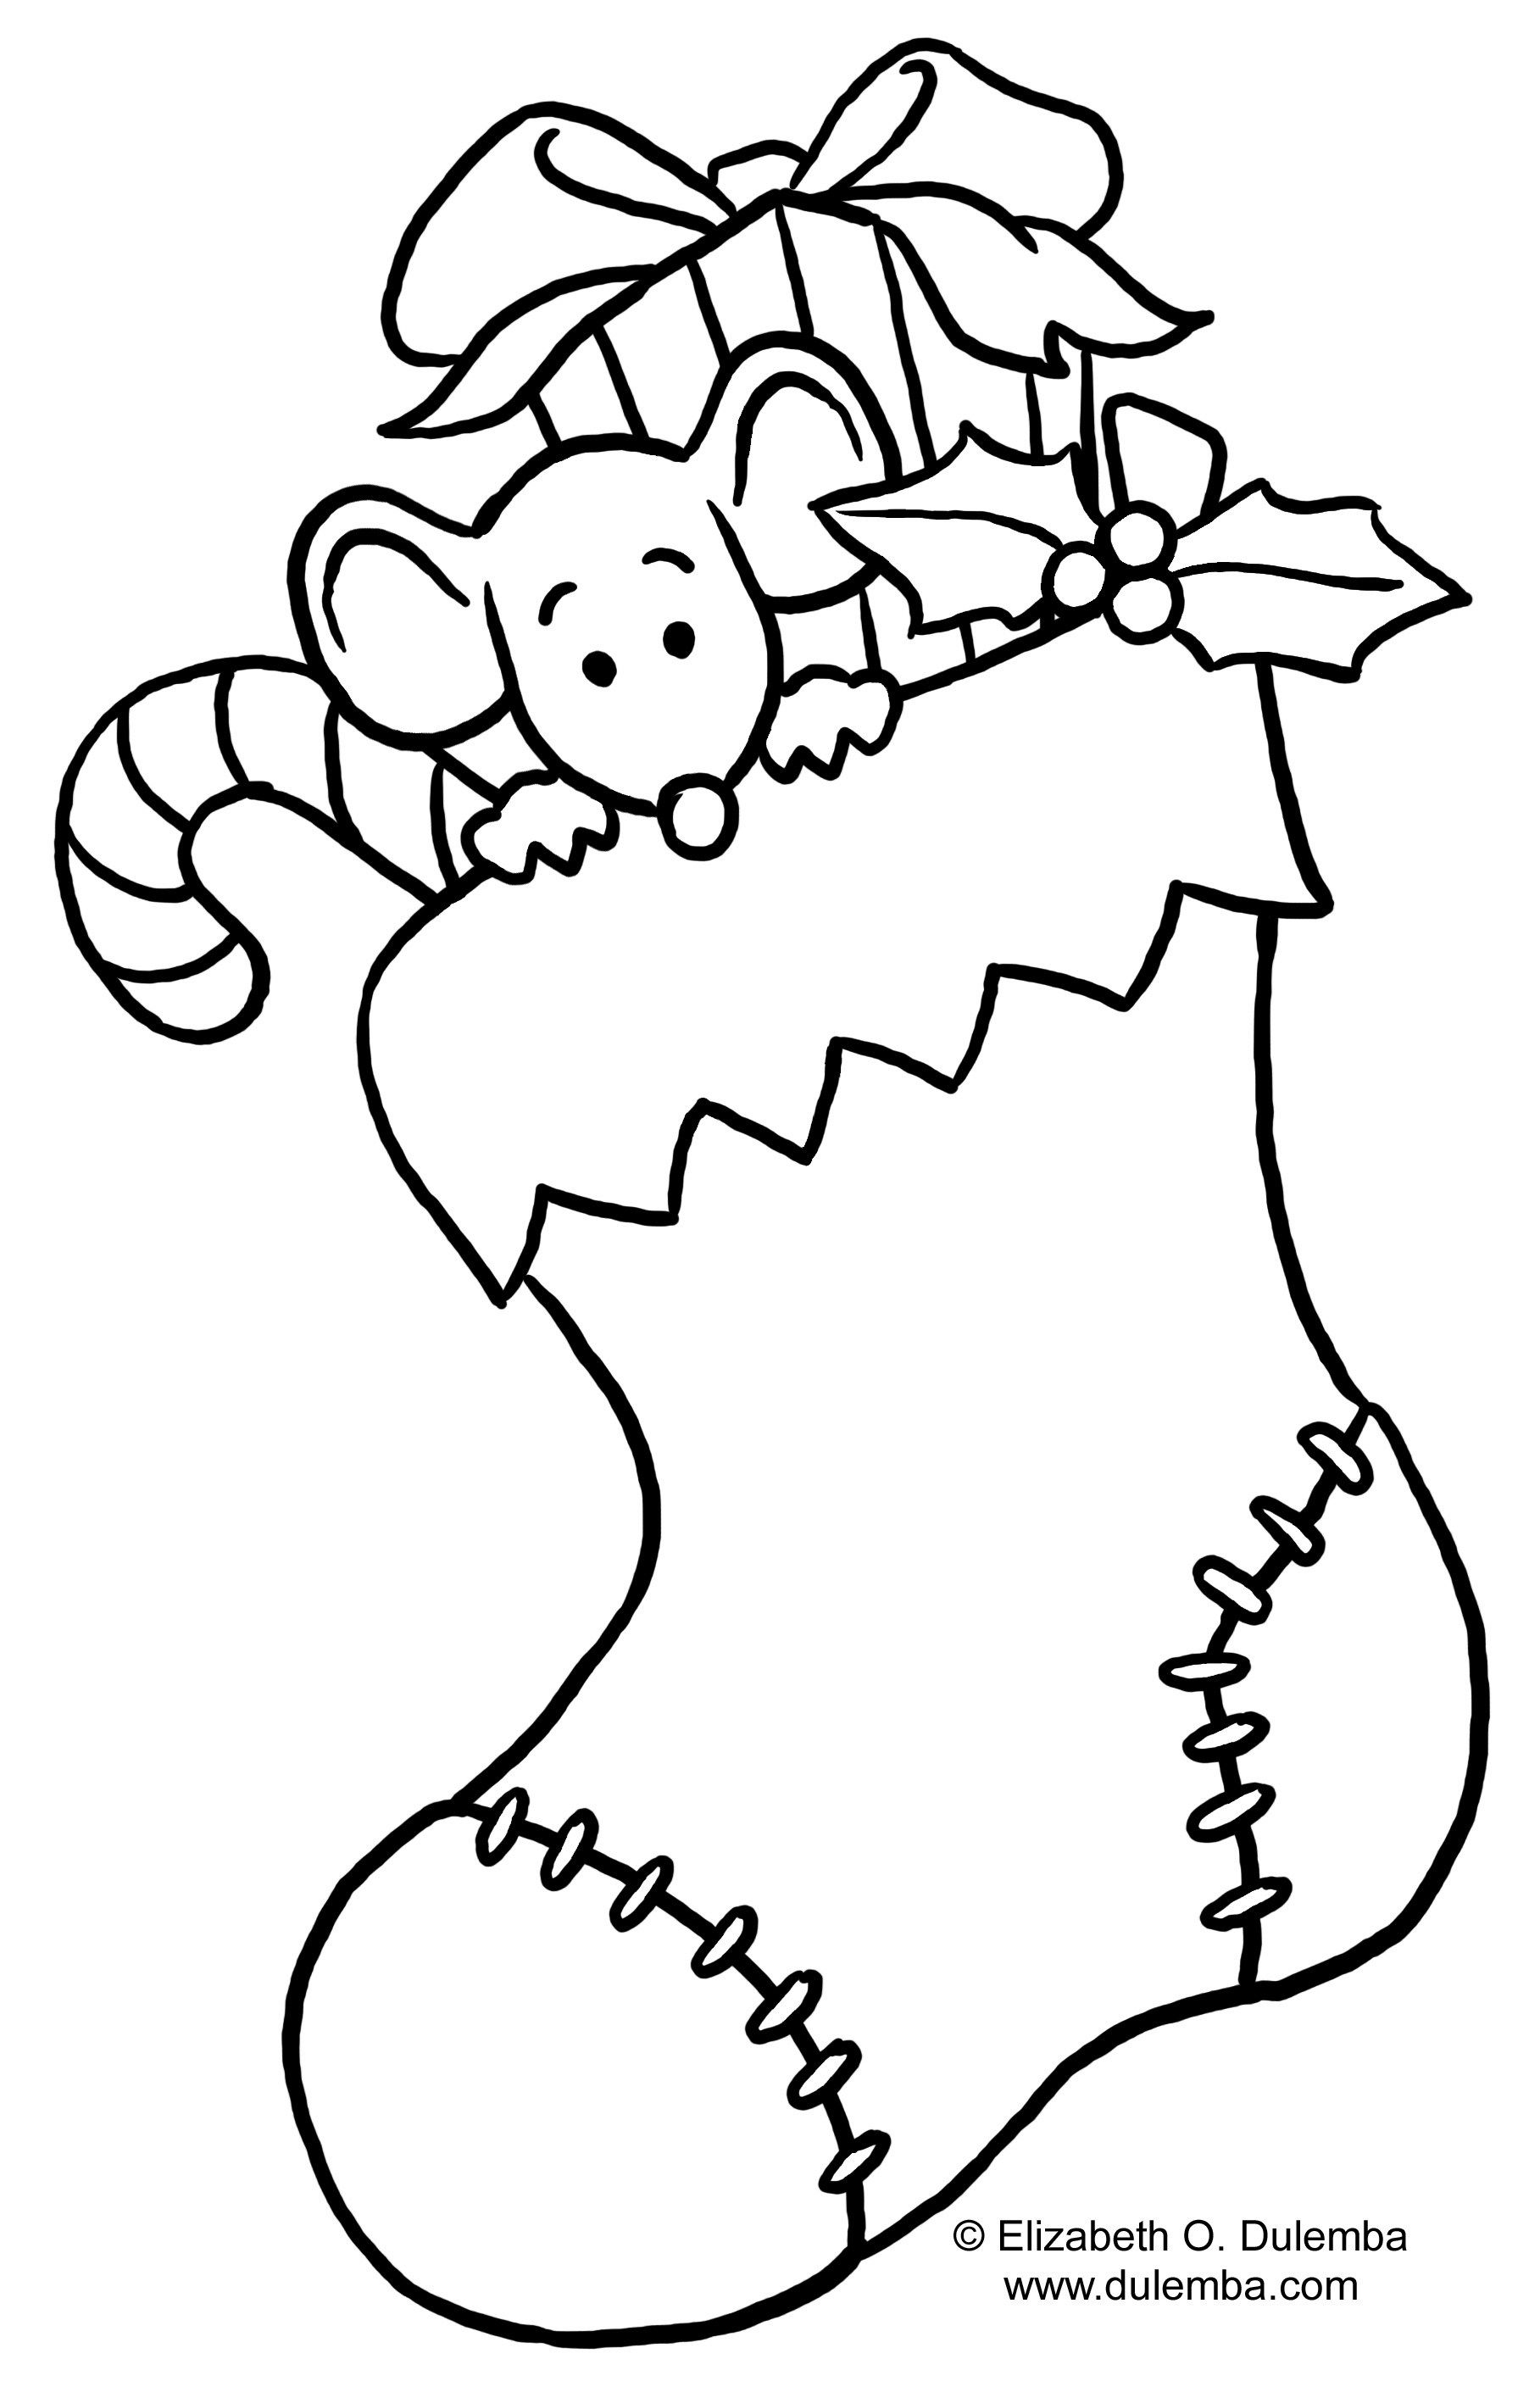 24 Marvelous Image Of Stocking Coloring Page With Images Free